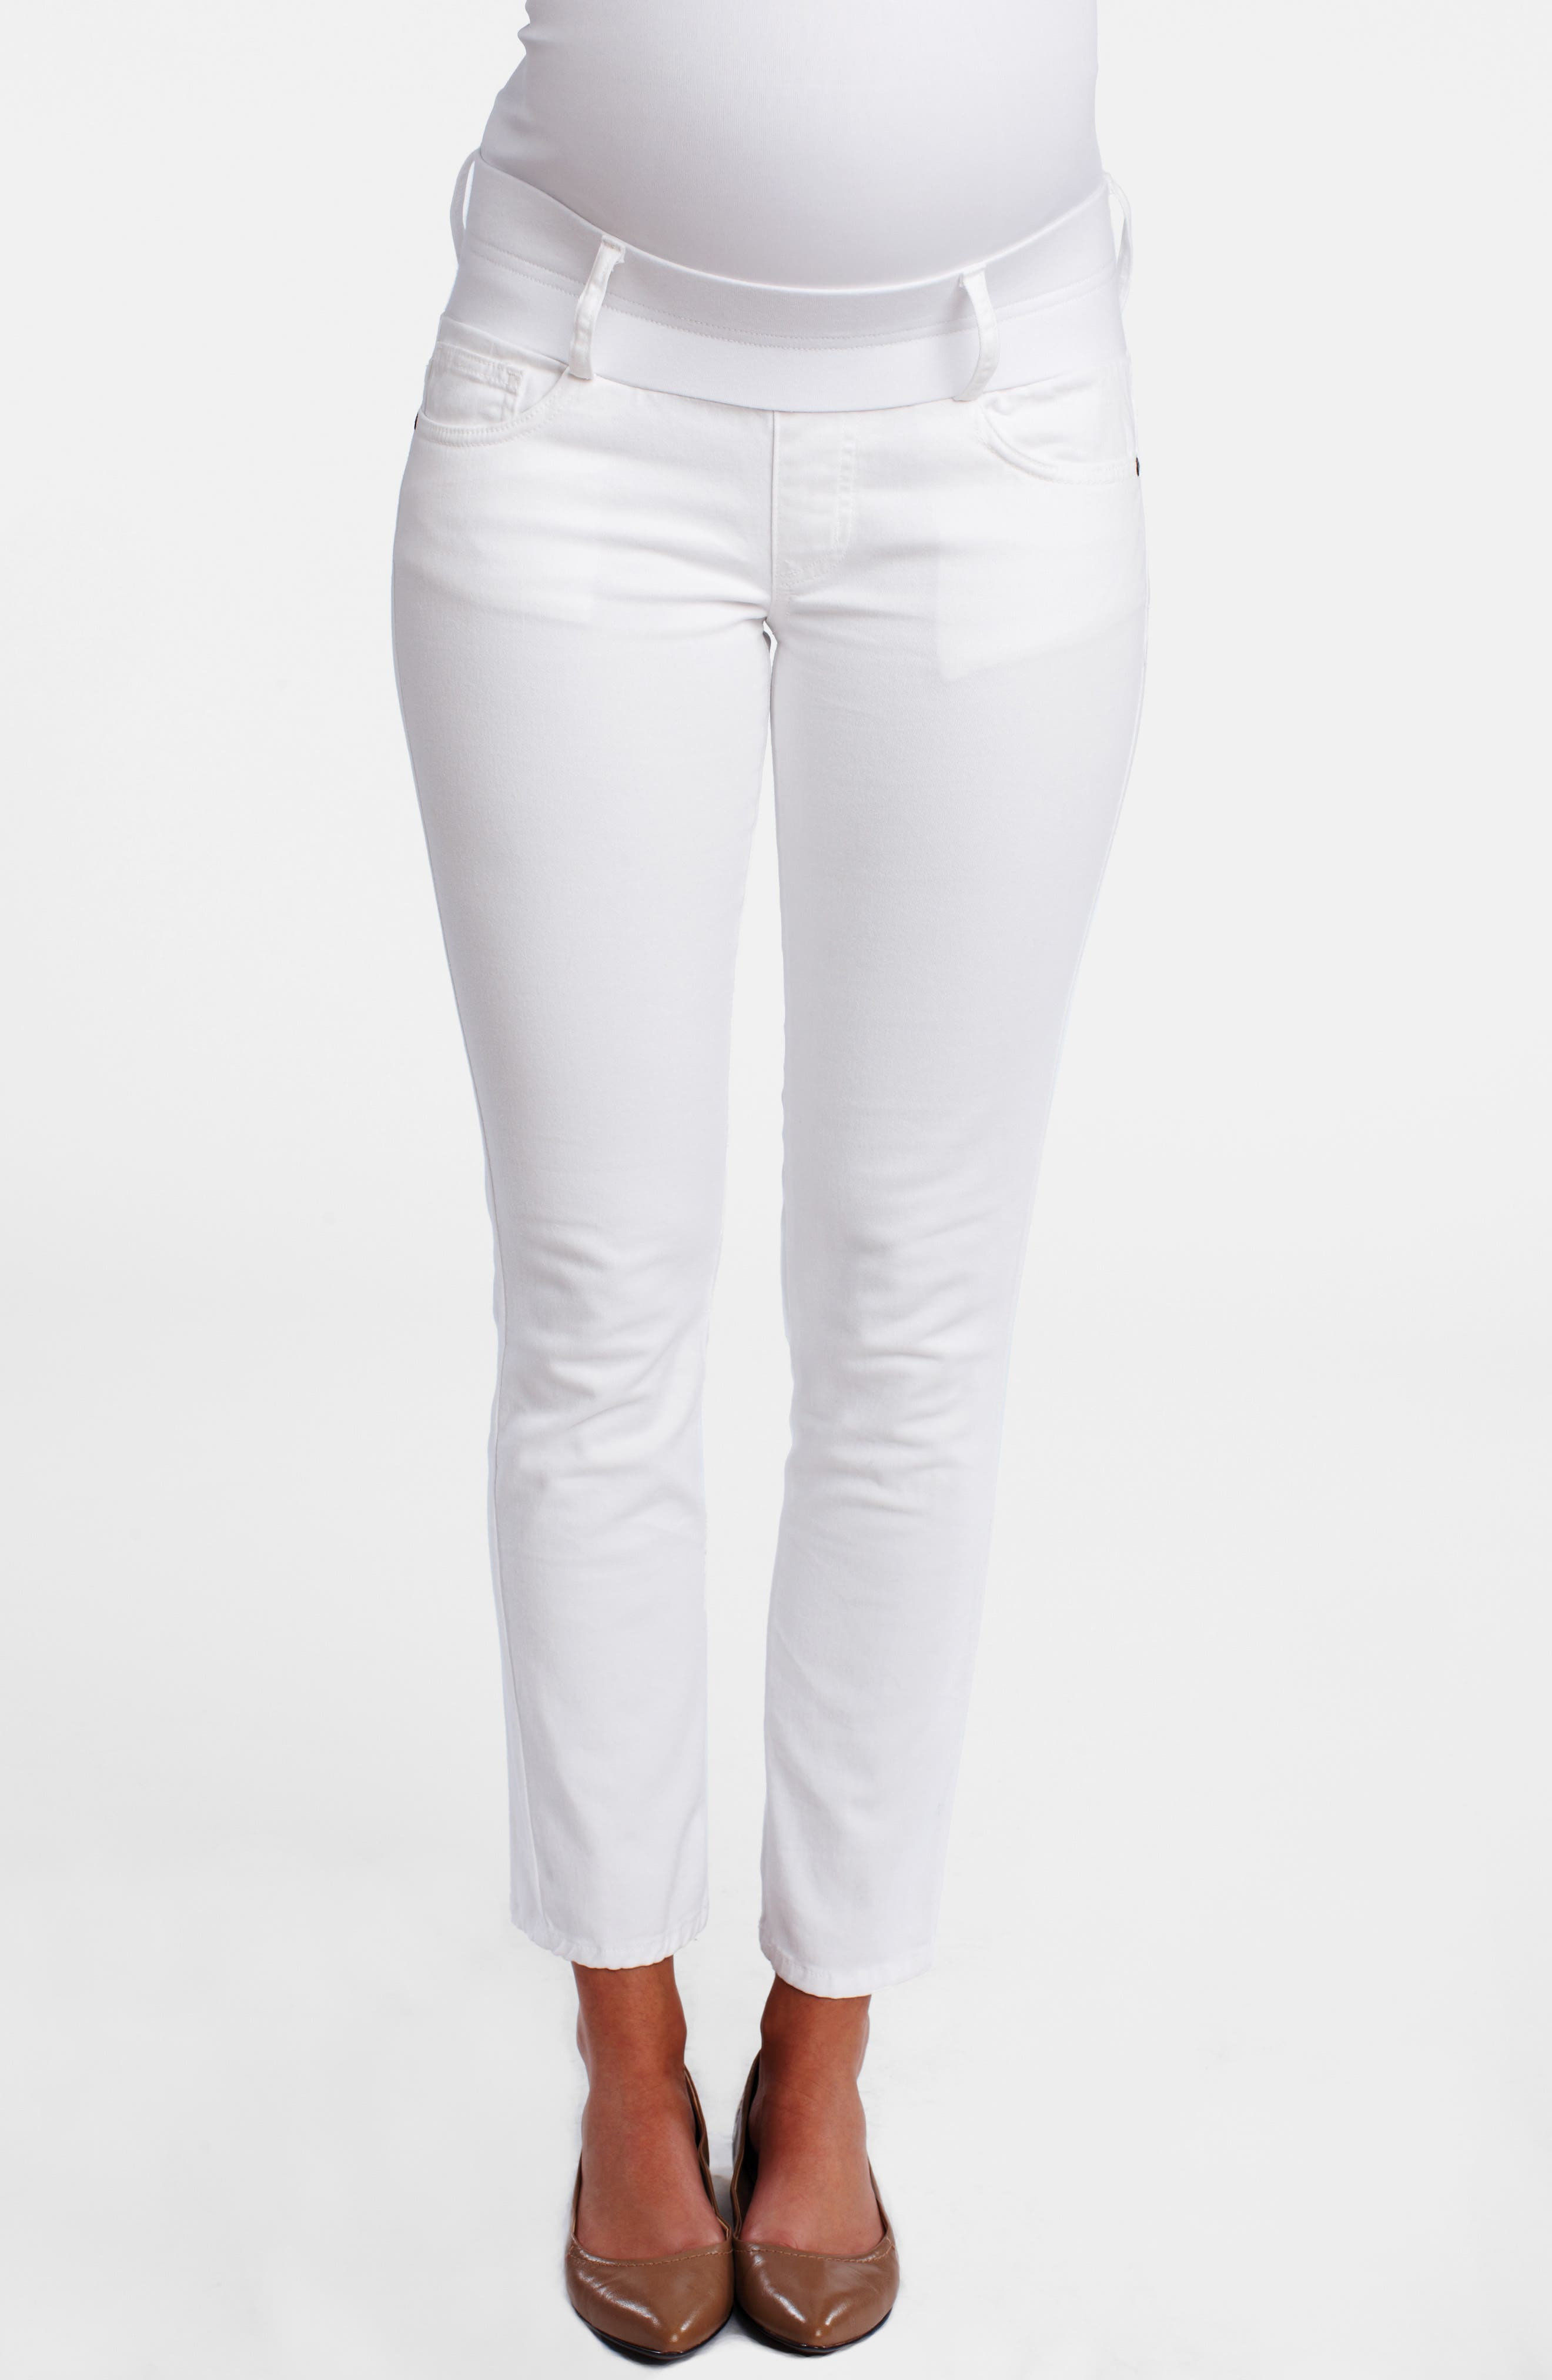 MATERNAL AMERICA Maternity Skinny Ankle Stretch Jeans, Main, color, 100